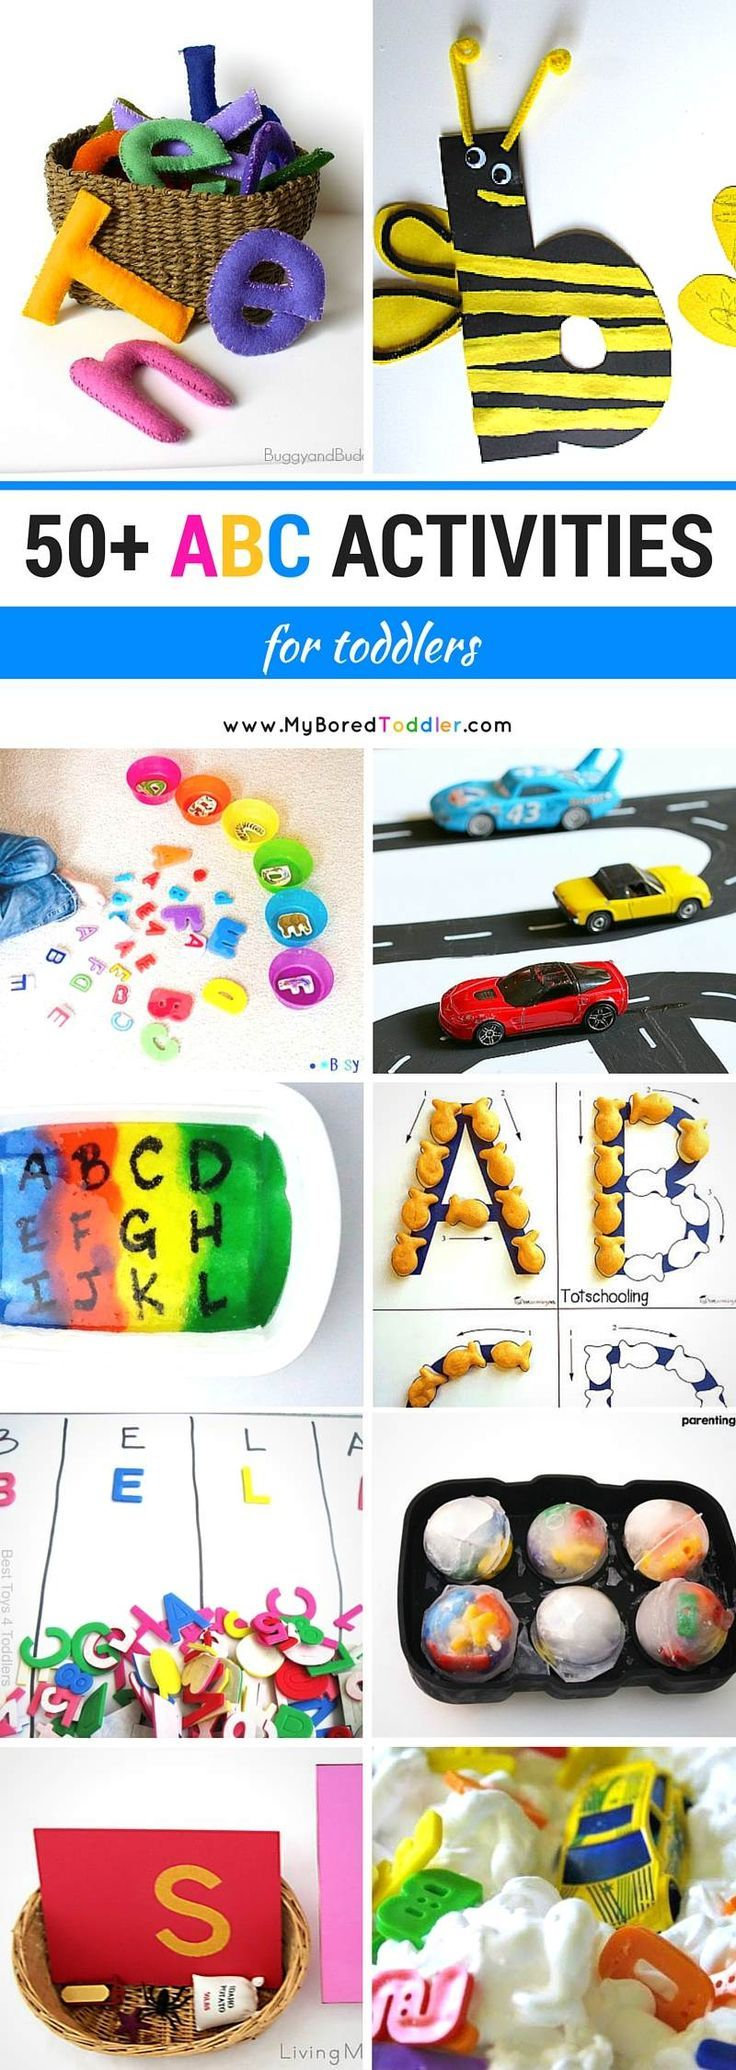 Most Popular Teaching Resources: 50+ ABC Activities for Toddlers - My Bored Toddler...